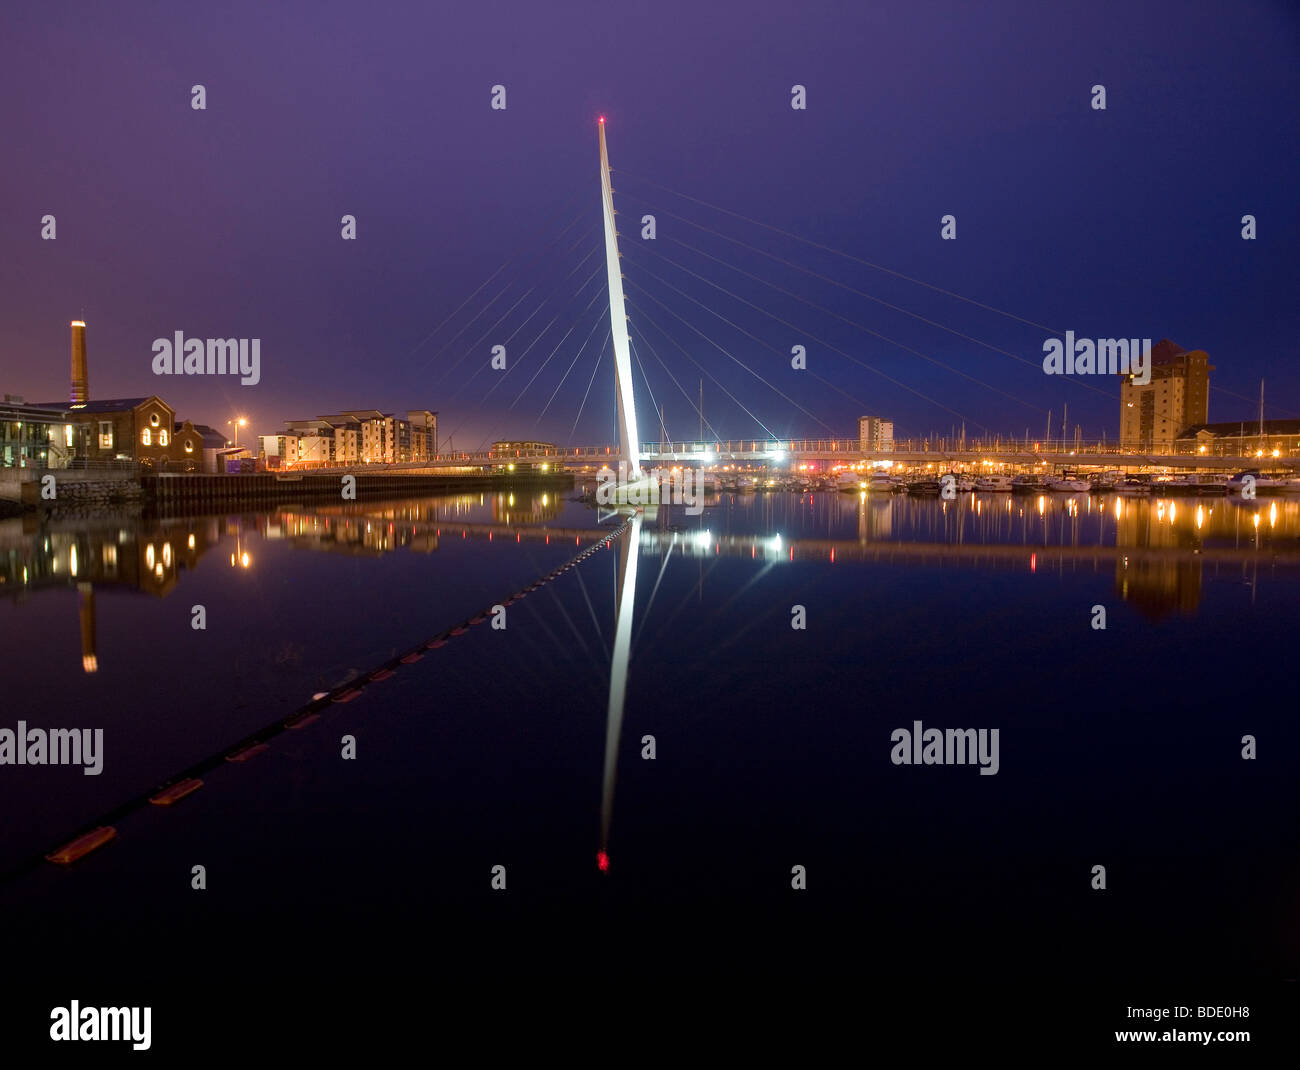 Sail Bridge, Swansea, Wales - Stock Image